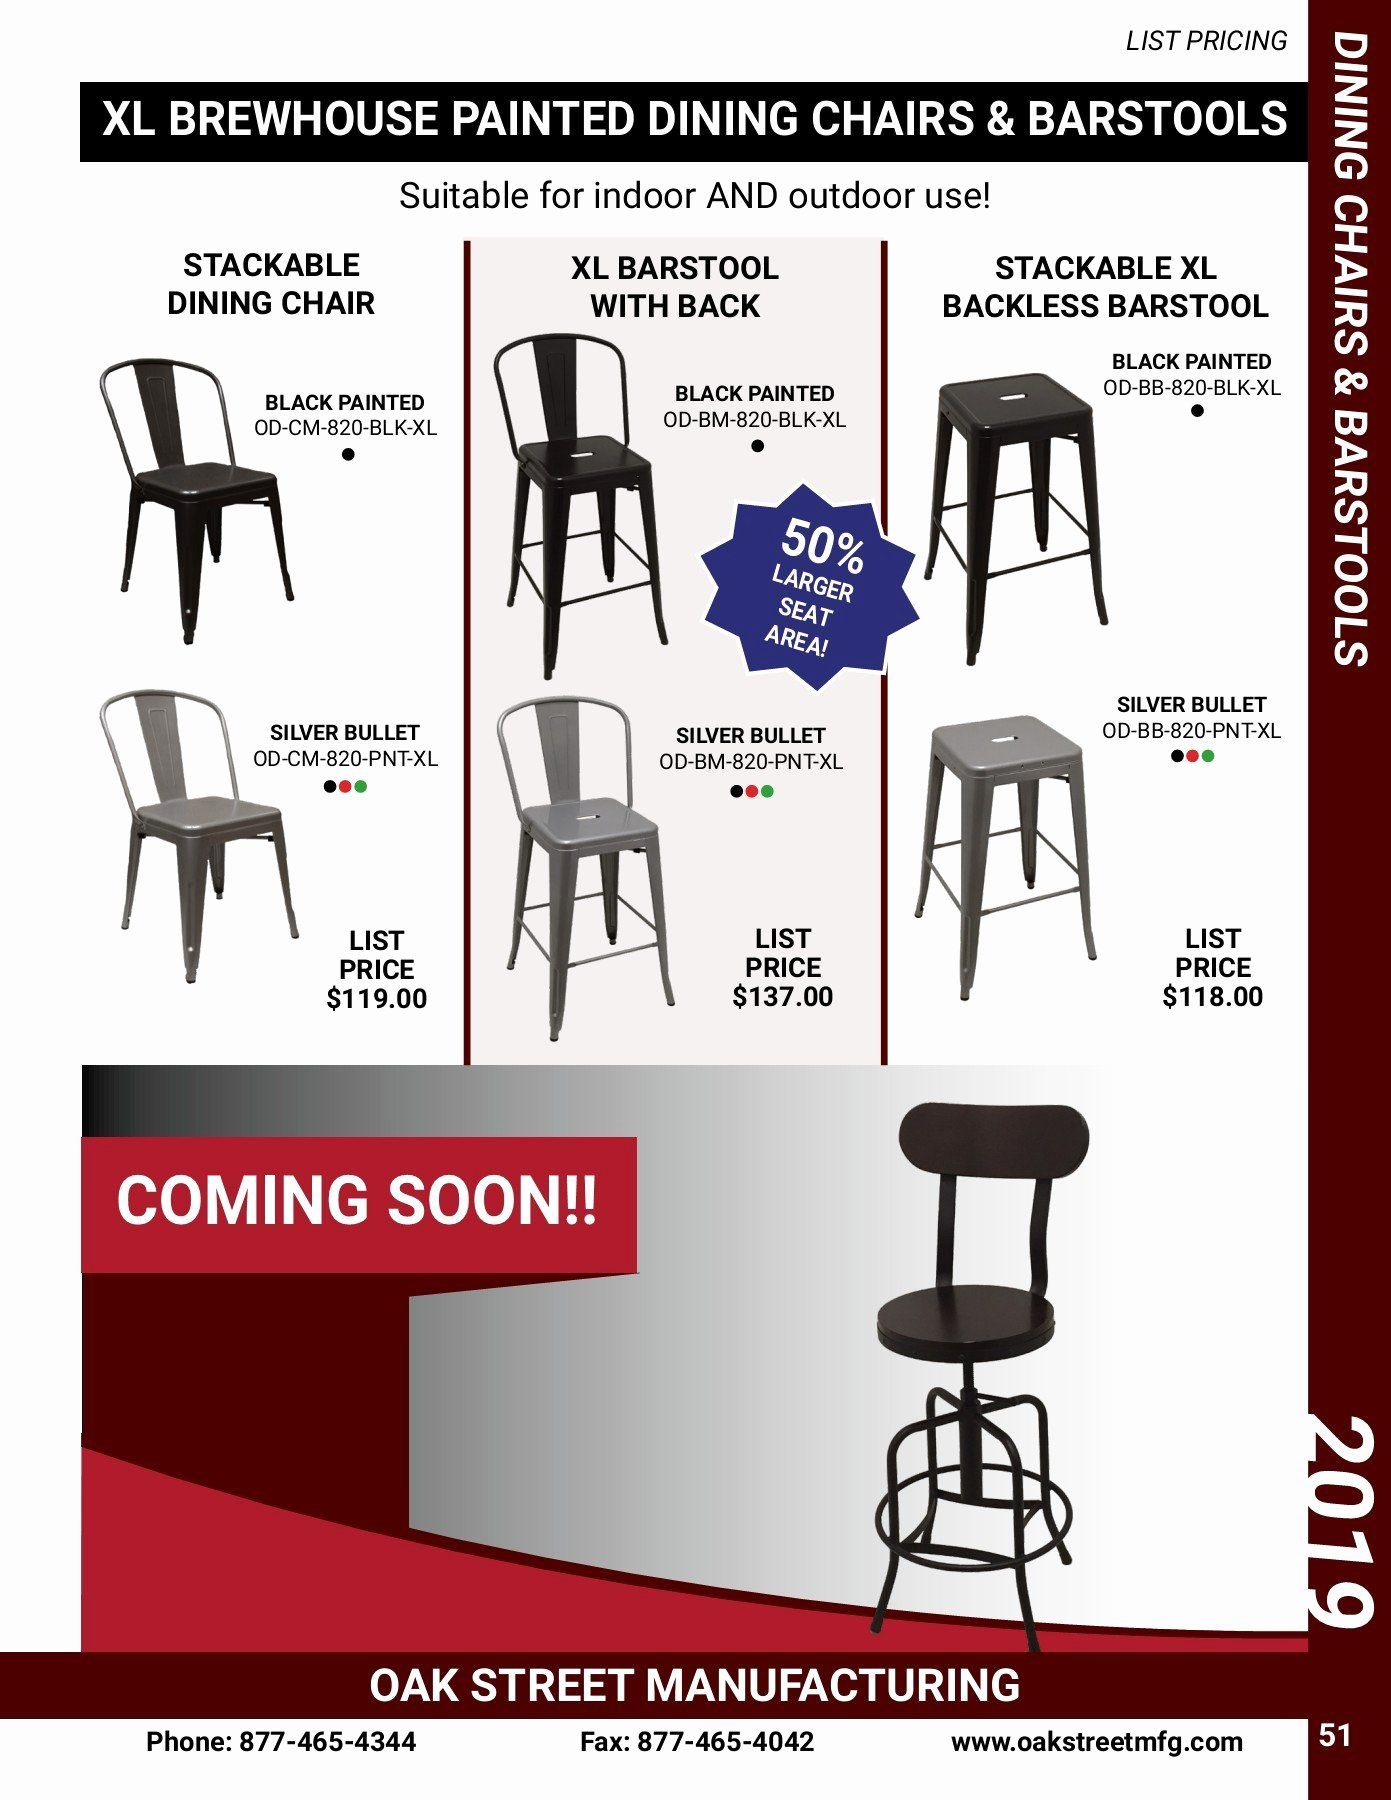 Dining Room Chair Seat Replacement Lovely 2019 Oak Street Manufacturing Product Catalog And In 2020 Painted Dining Chairs Dining Room Design Modern Dining Room Chairs